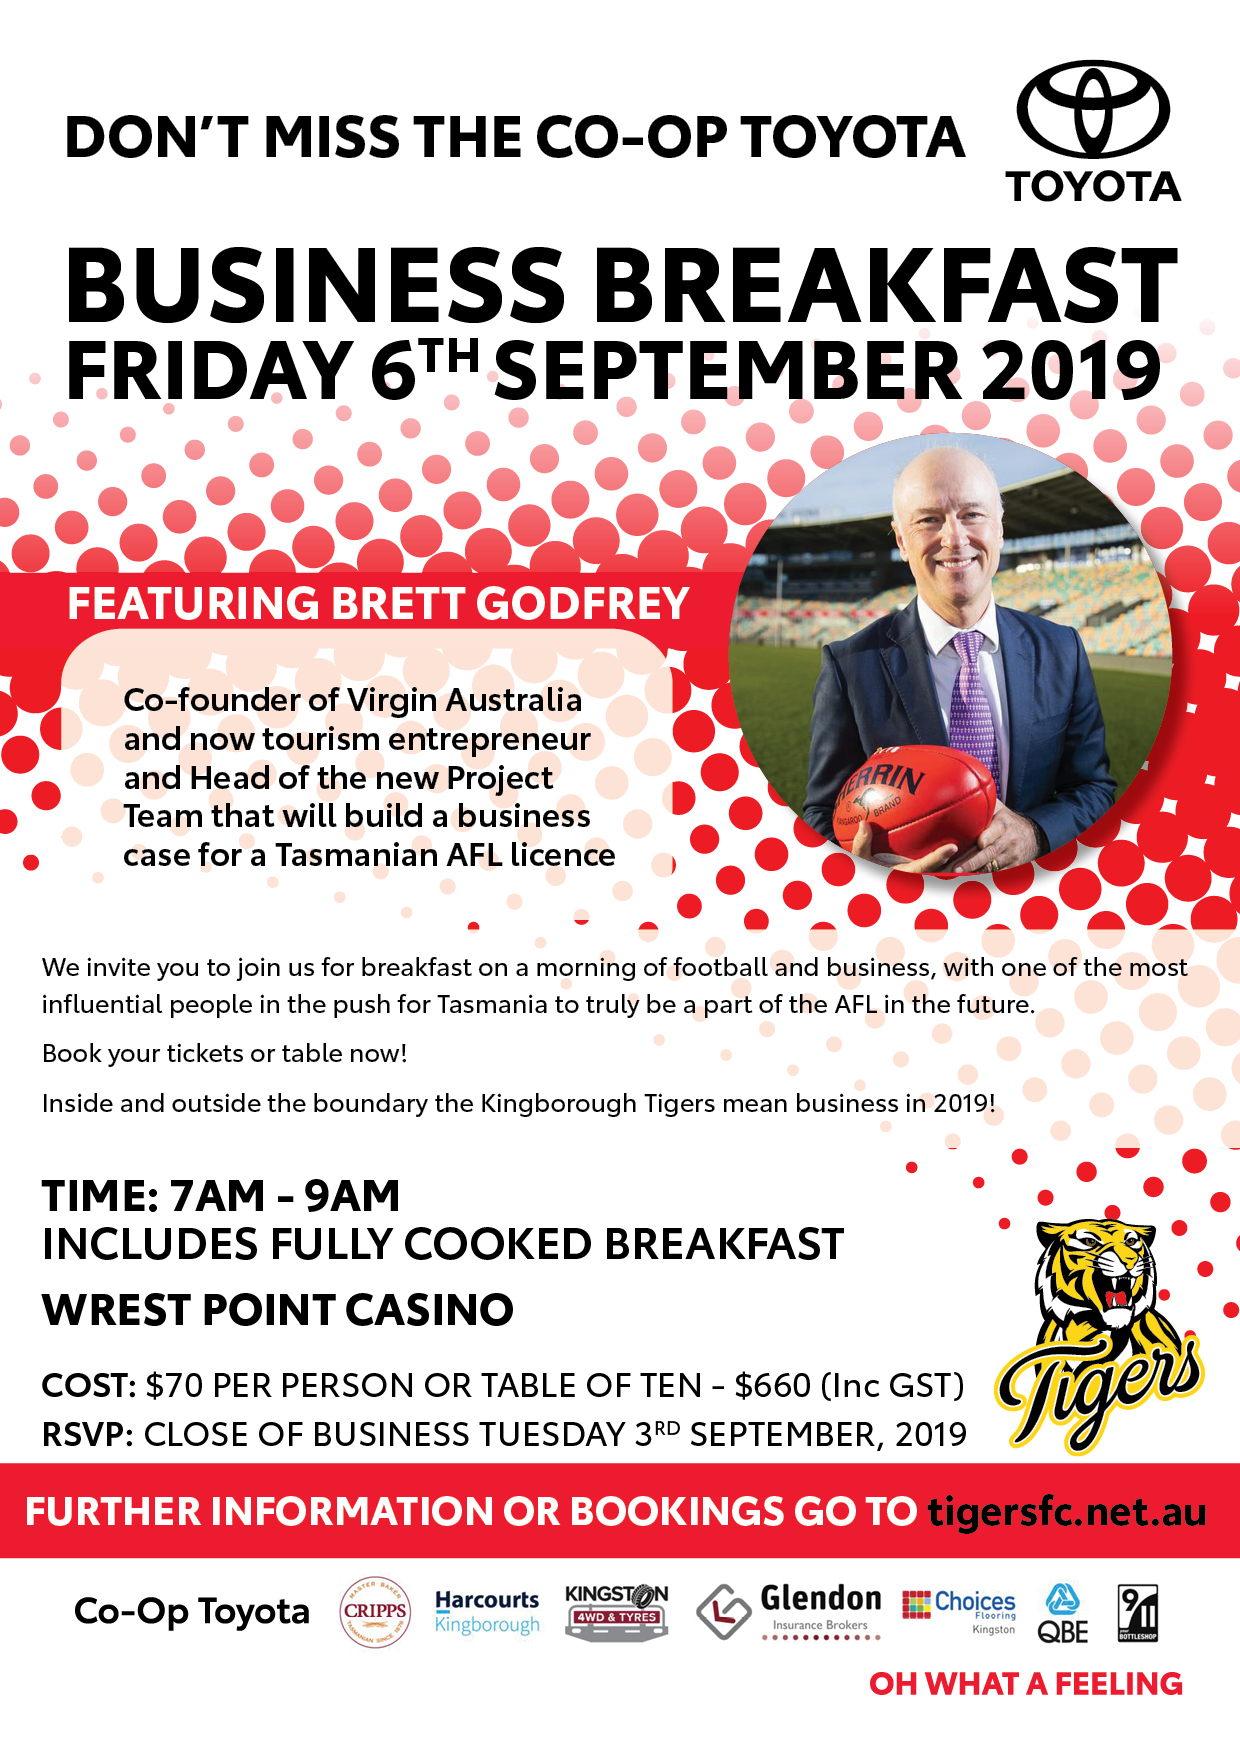 The Co-Op Toyota Business Breakfast